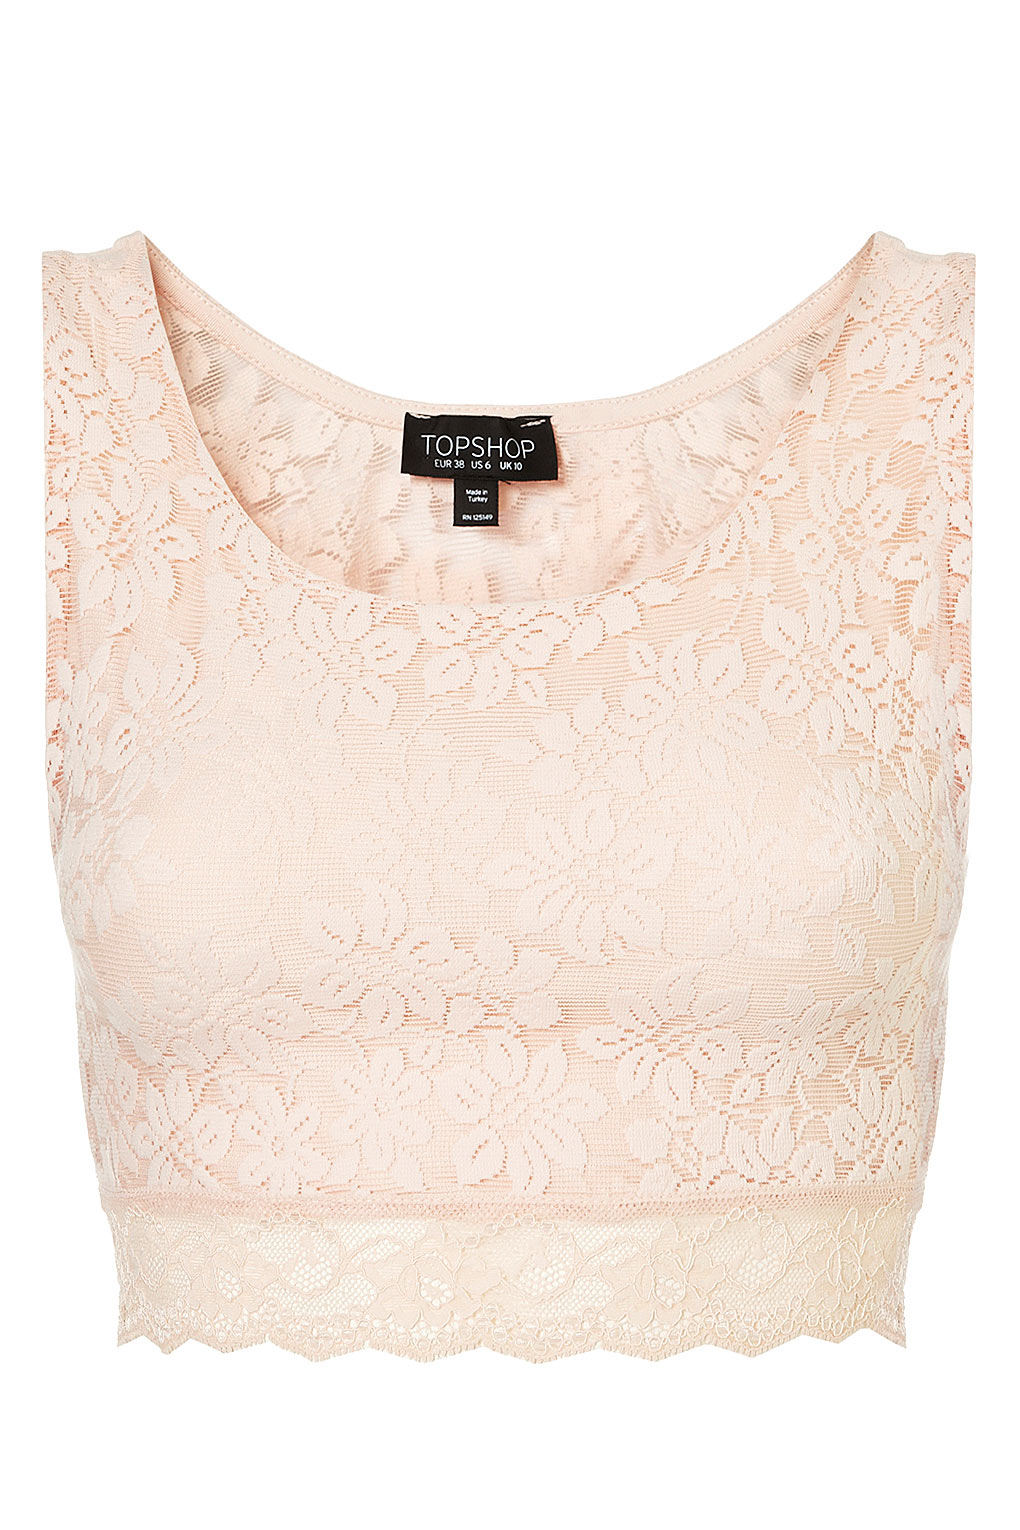 27ac2714afe TOPSHOP Lace Crop Top in Pink - Lyst